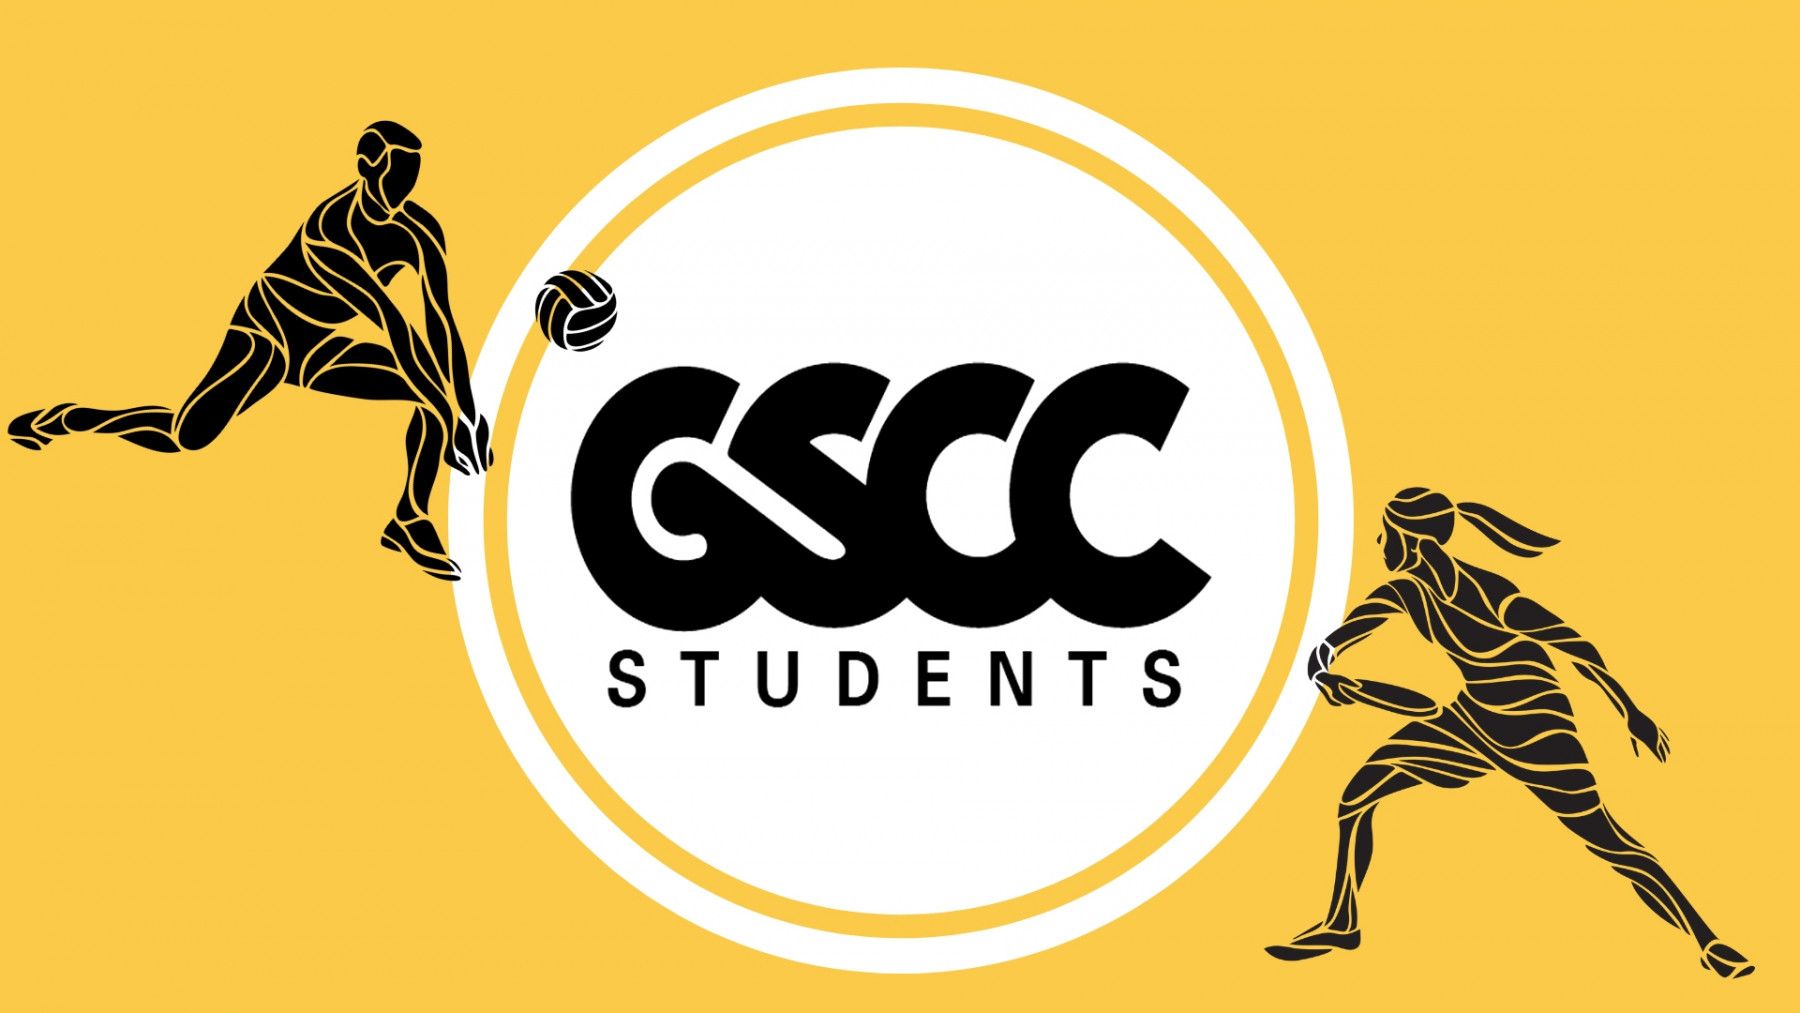 GSCC Students-Sporting Events